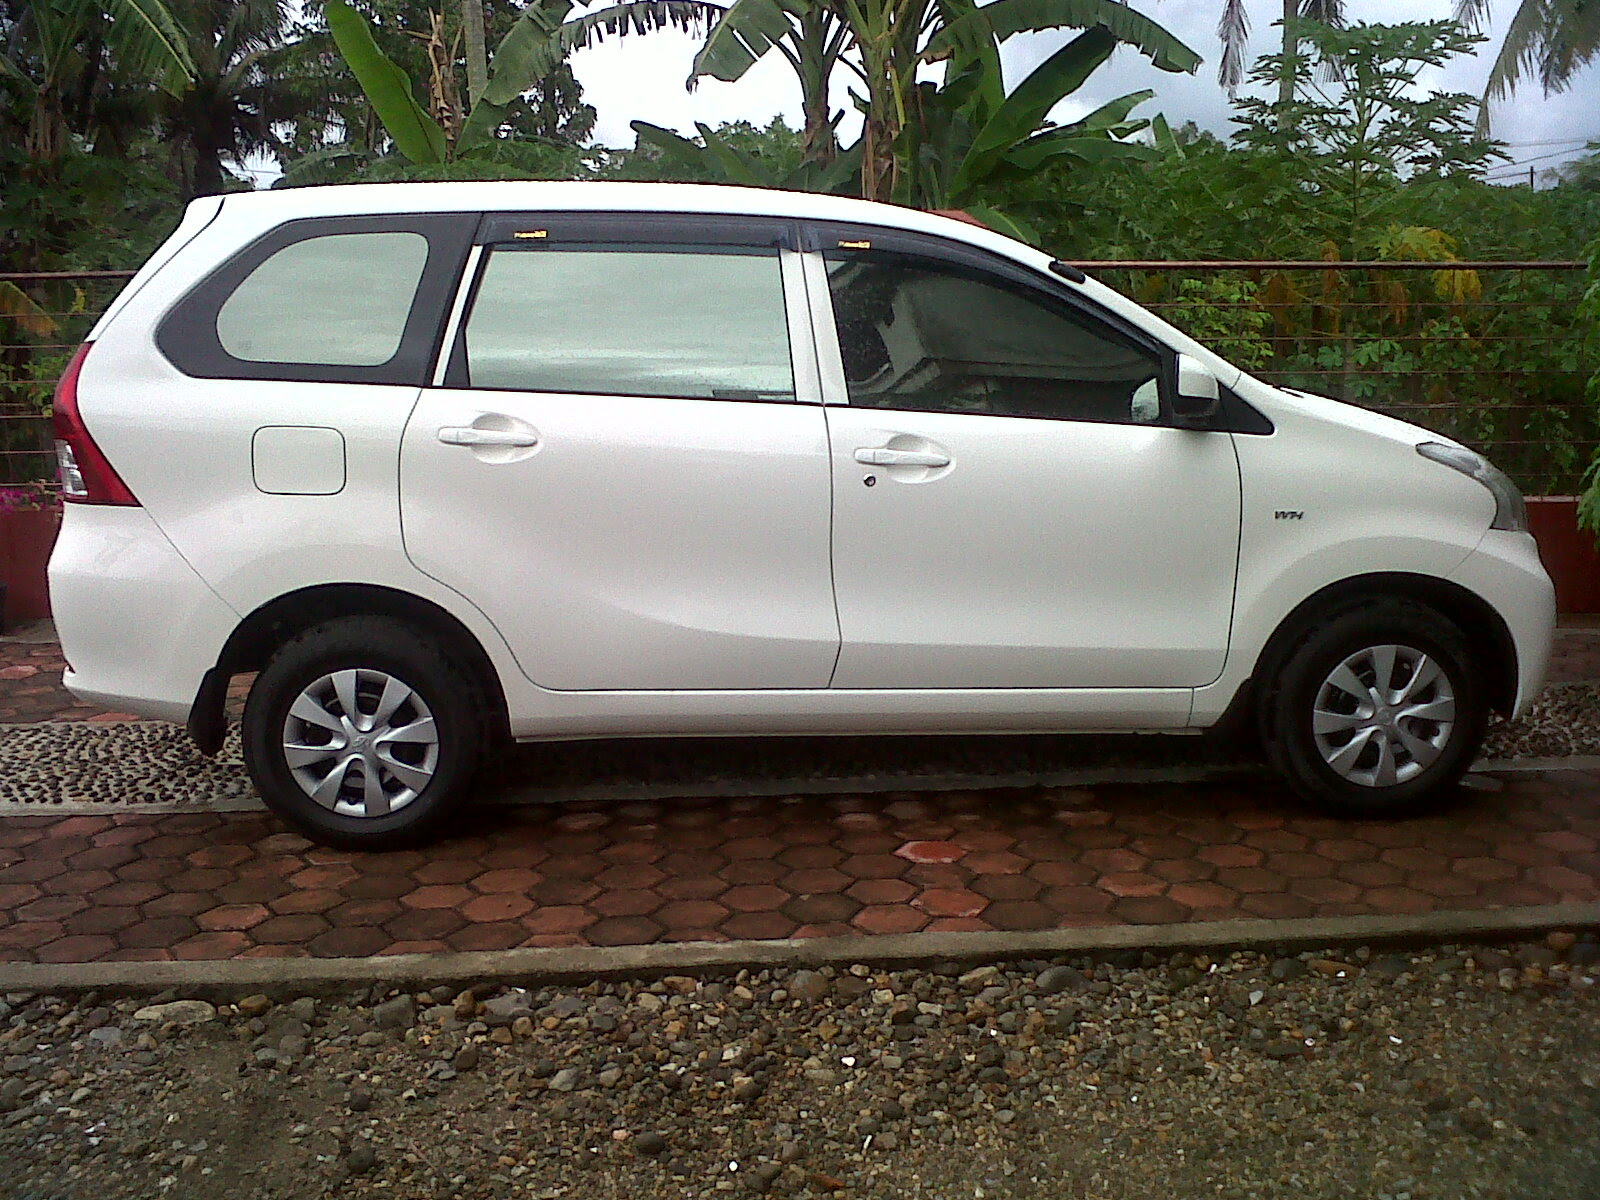 Image of an Avanza from the side of the Ottomania 86